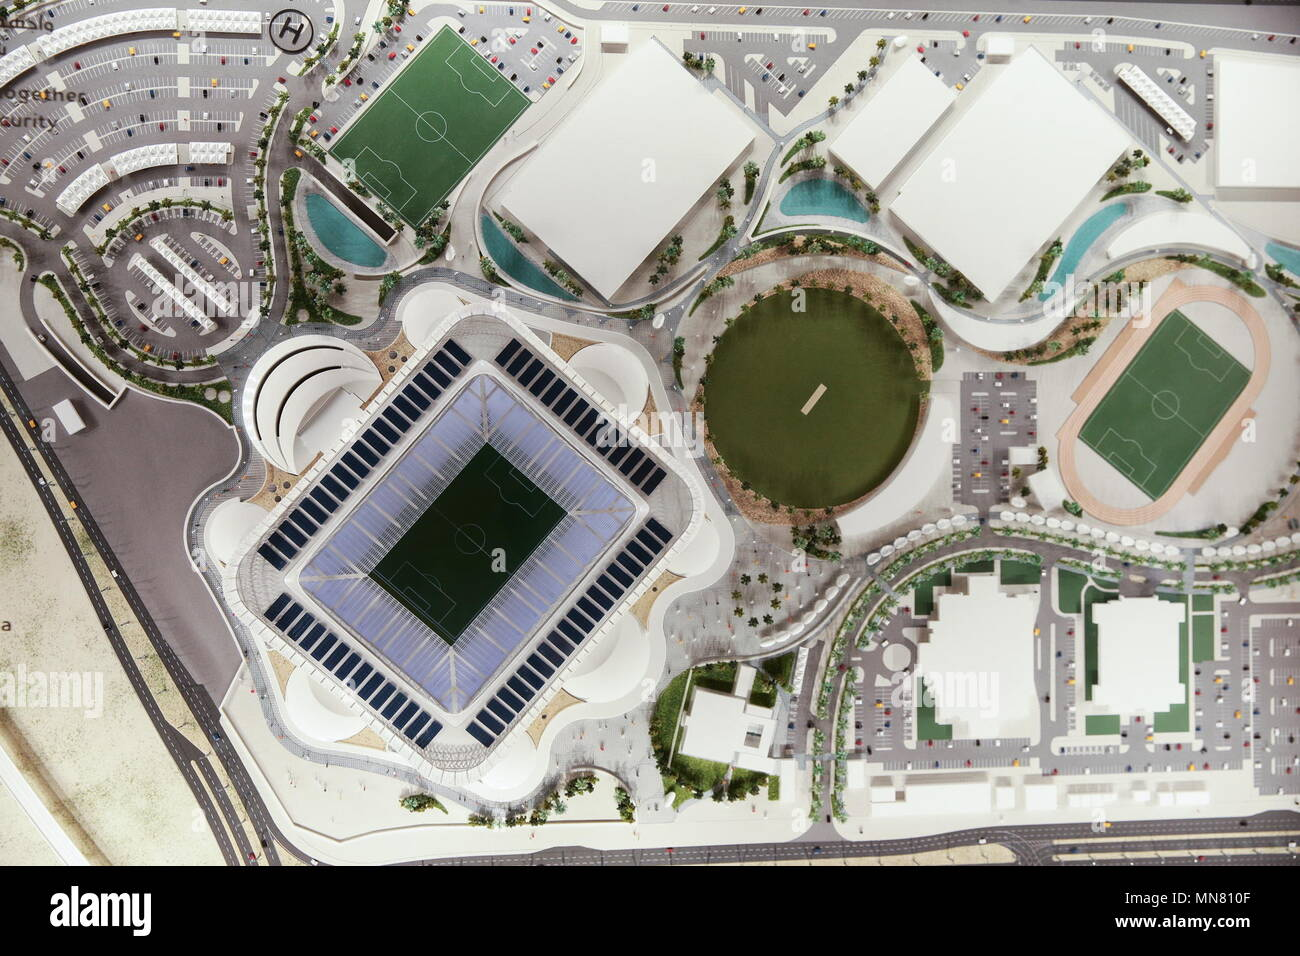 Doha, Qatar. 13th May, 2018. DOHA, QATAR - MAY 13, 2018: A mock-up of Ahmed bin Ali Stadium, a venue for 2022 FIFA World Cup football matches, in the city of Al Rayyan, seen at the Headquarters of the Qatar 2022 Local Organising Committee (LOC). Mikhail Aleksandrov/TASS Credit: ITAR-TASS News Agency/Alamy Live News Stock Photo